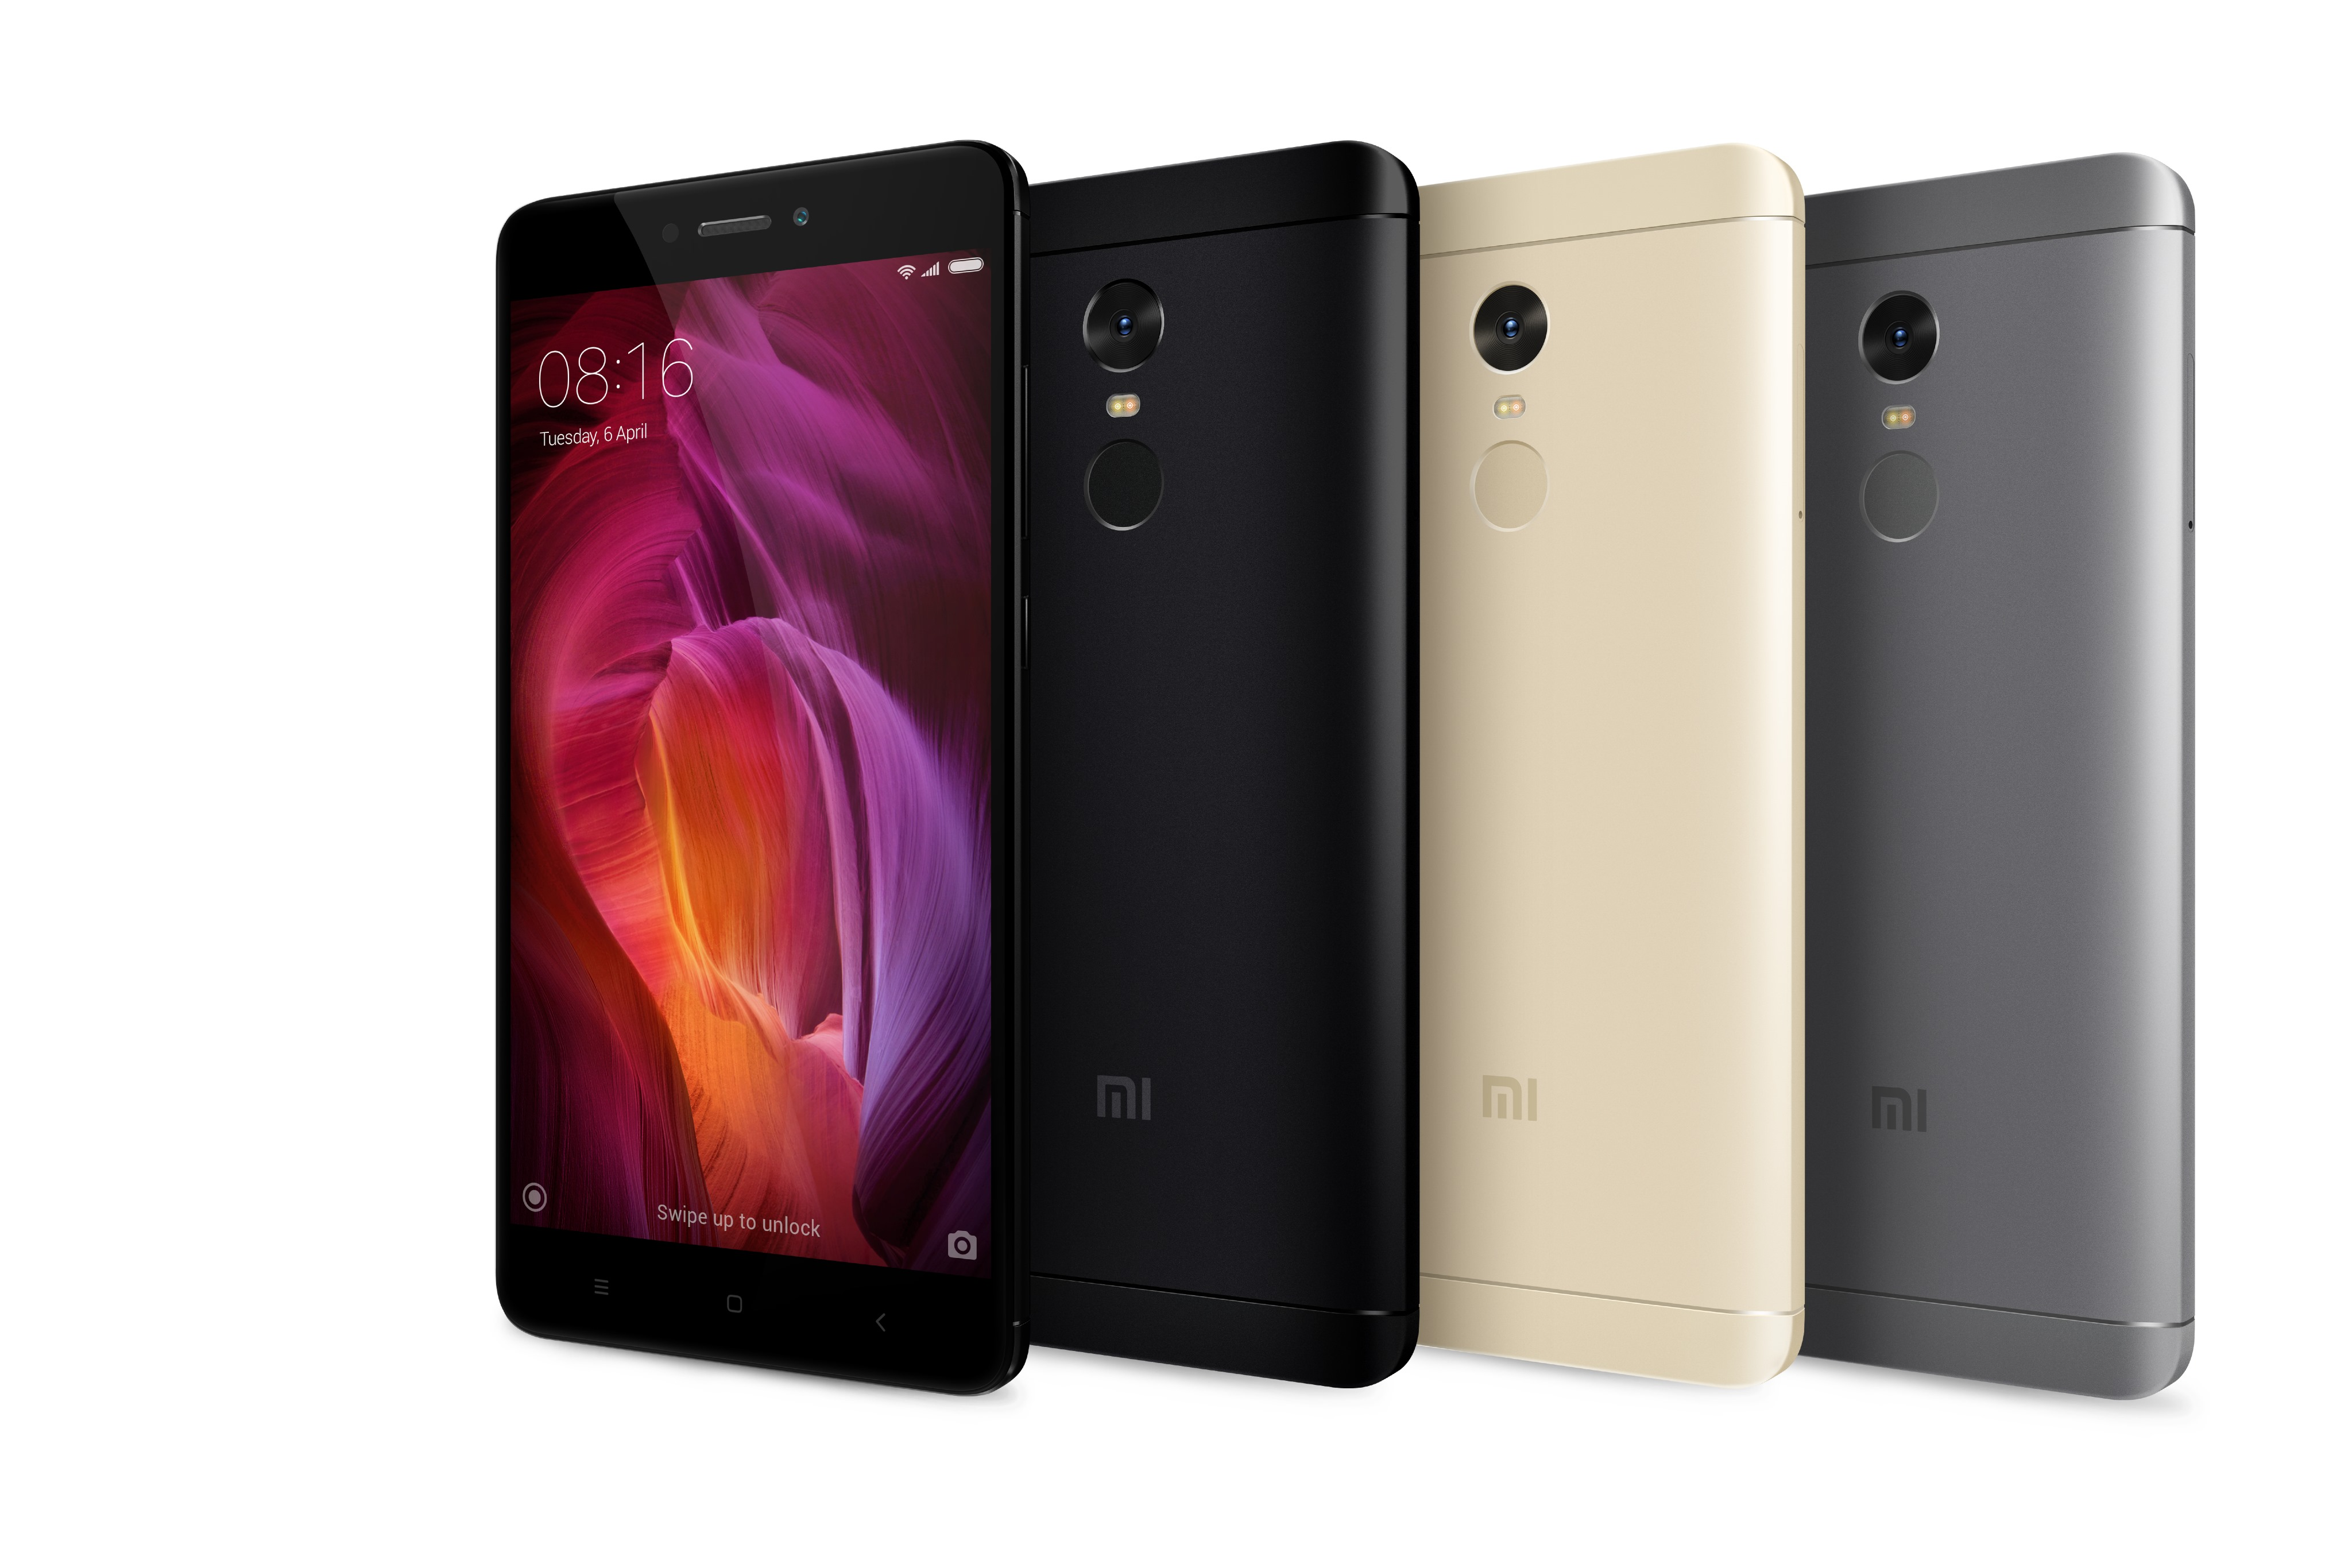 Redmi Note 4 For Android Apk: Xiaomi Présente La Variante Snapdragon Du Redmi Note 4